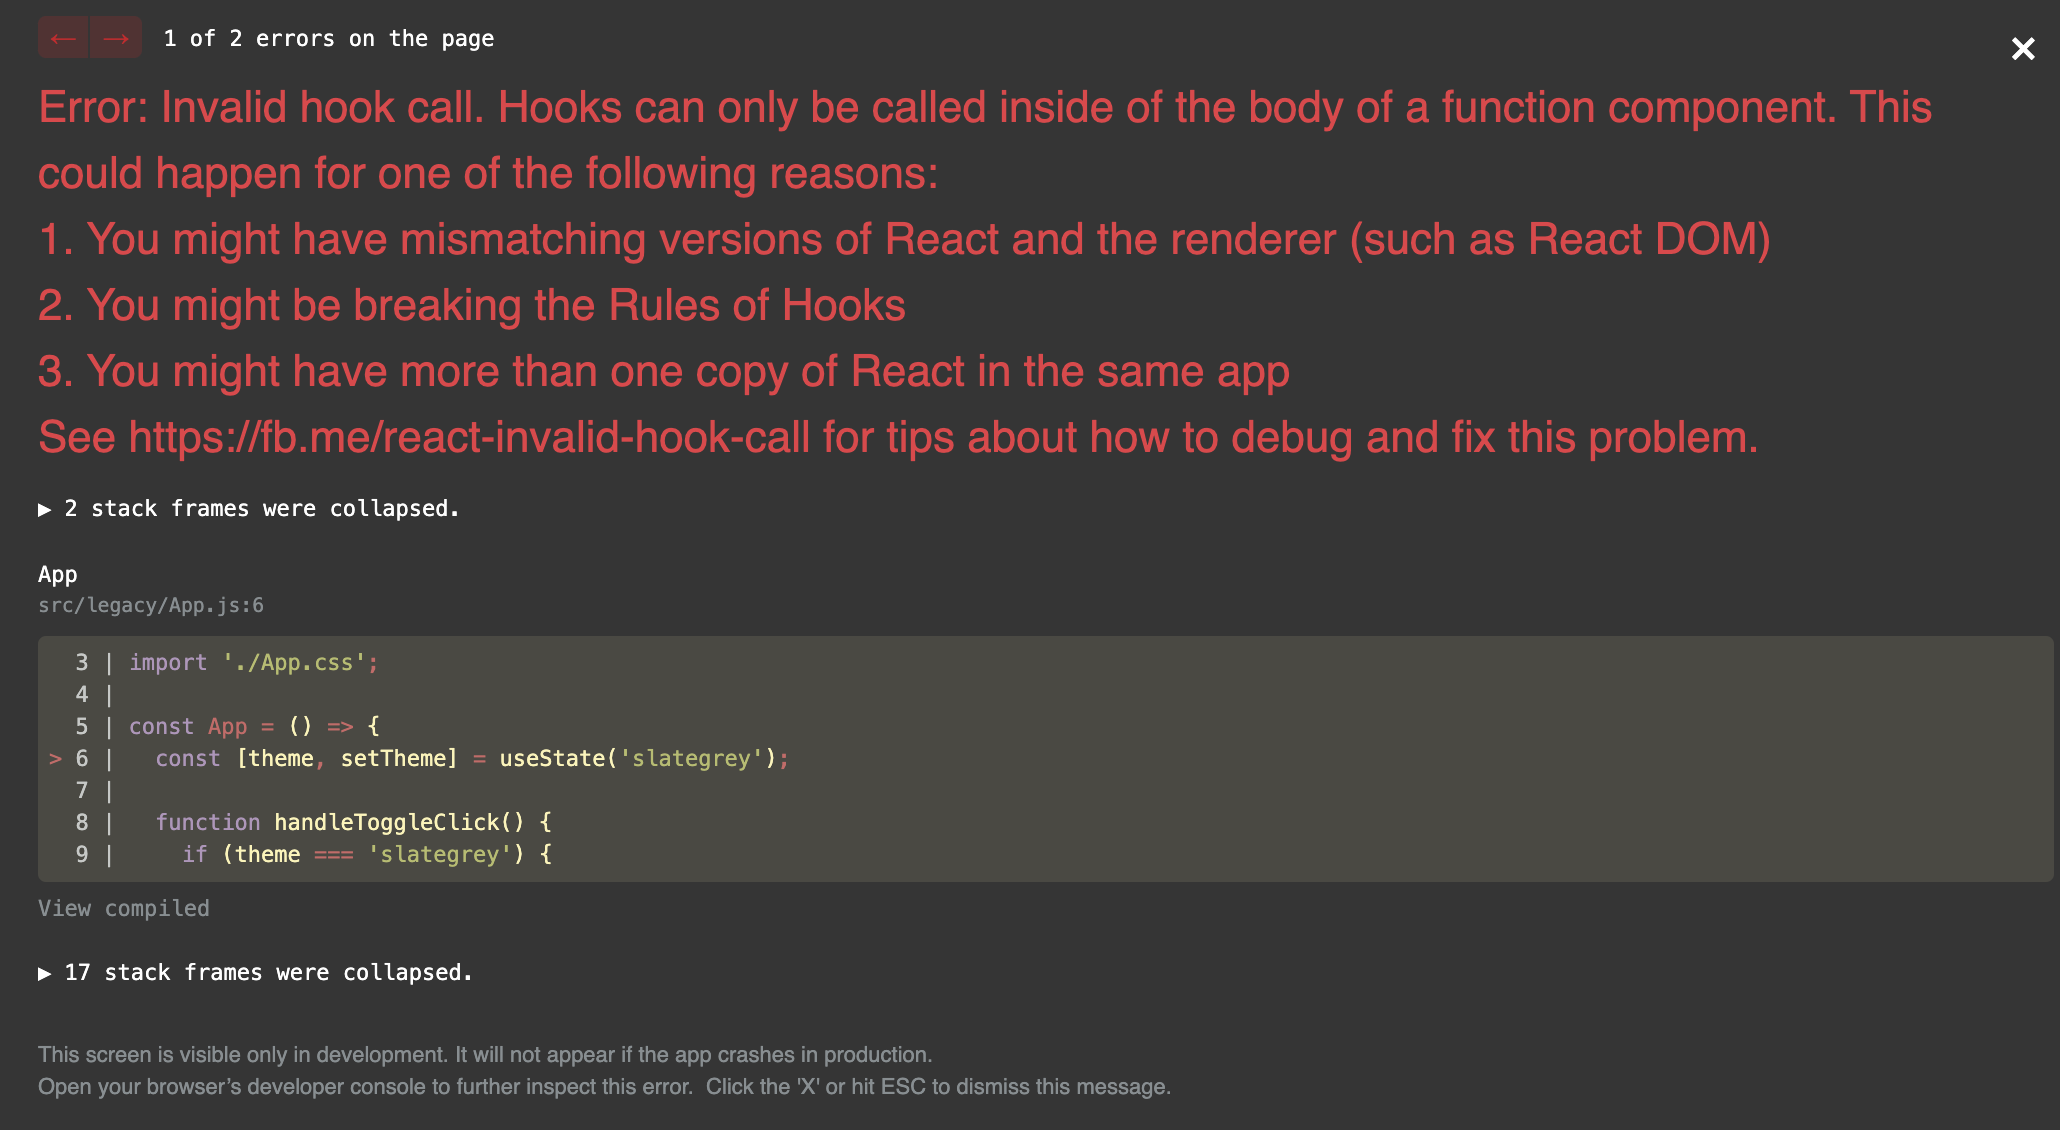 Error: Invalid hook call. Hooks can only be called inside of the body of a function component. This could happen for one of the following reasons: